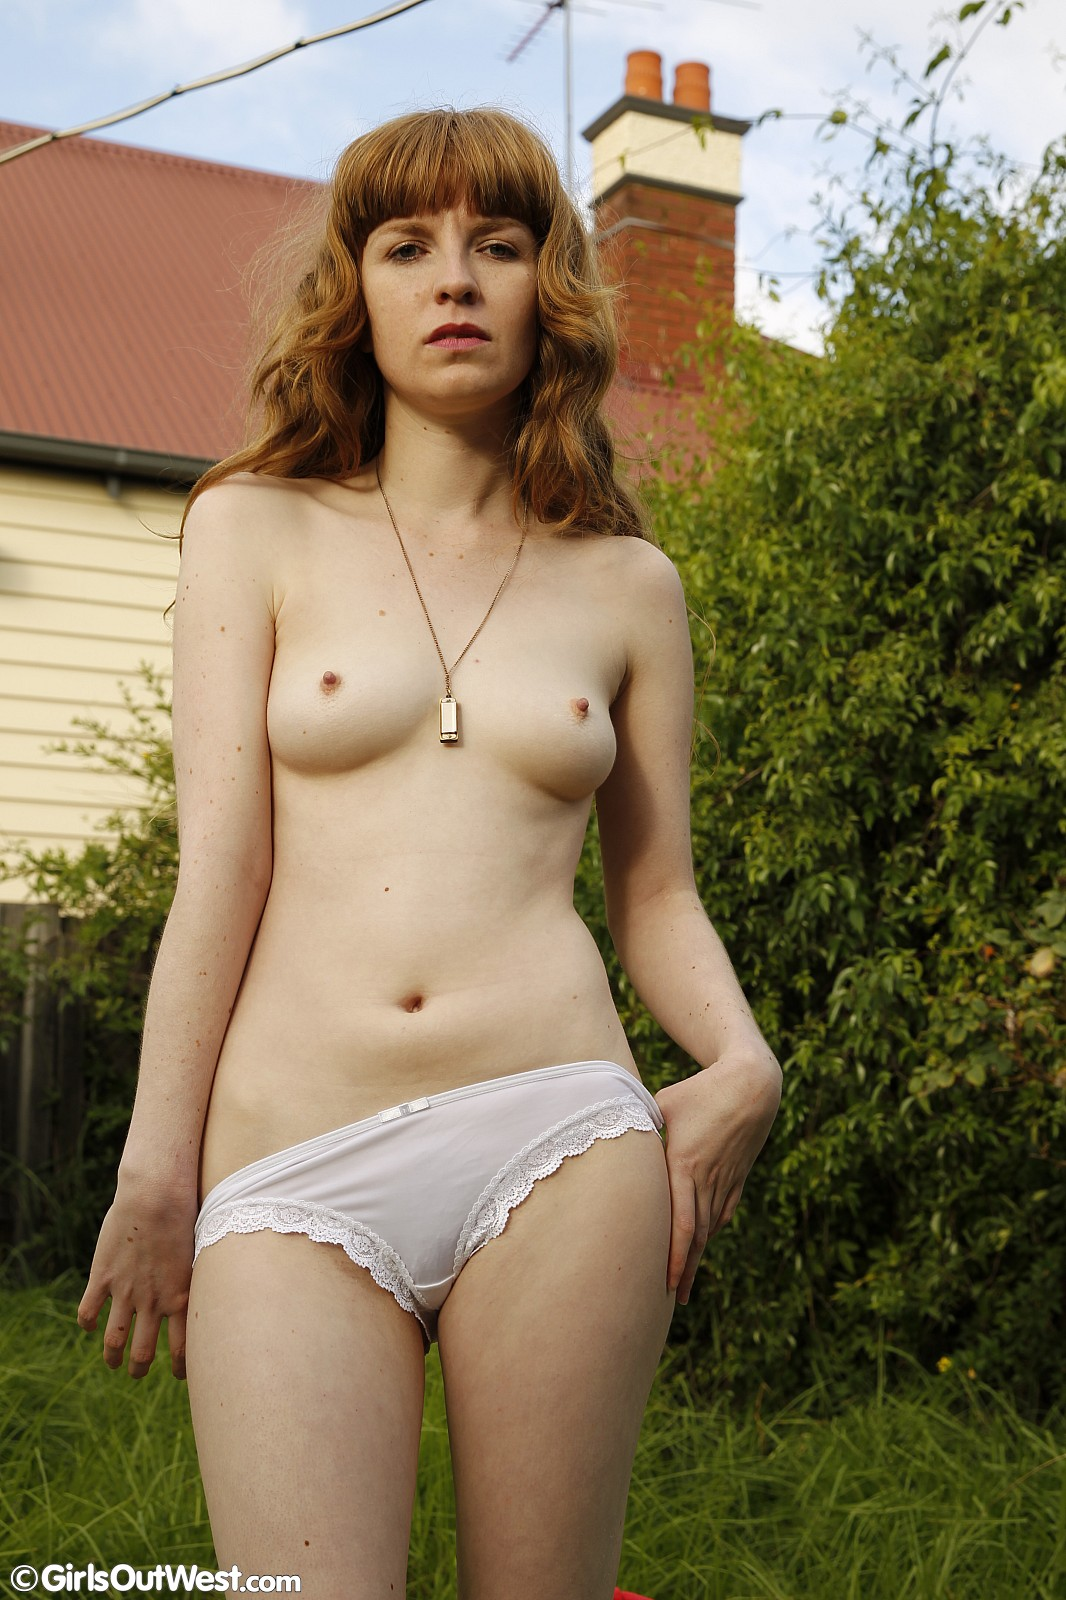 Australian Cute Teen Porn hairy australians girls - top porn photos